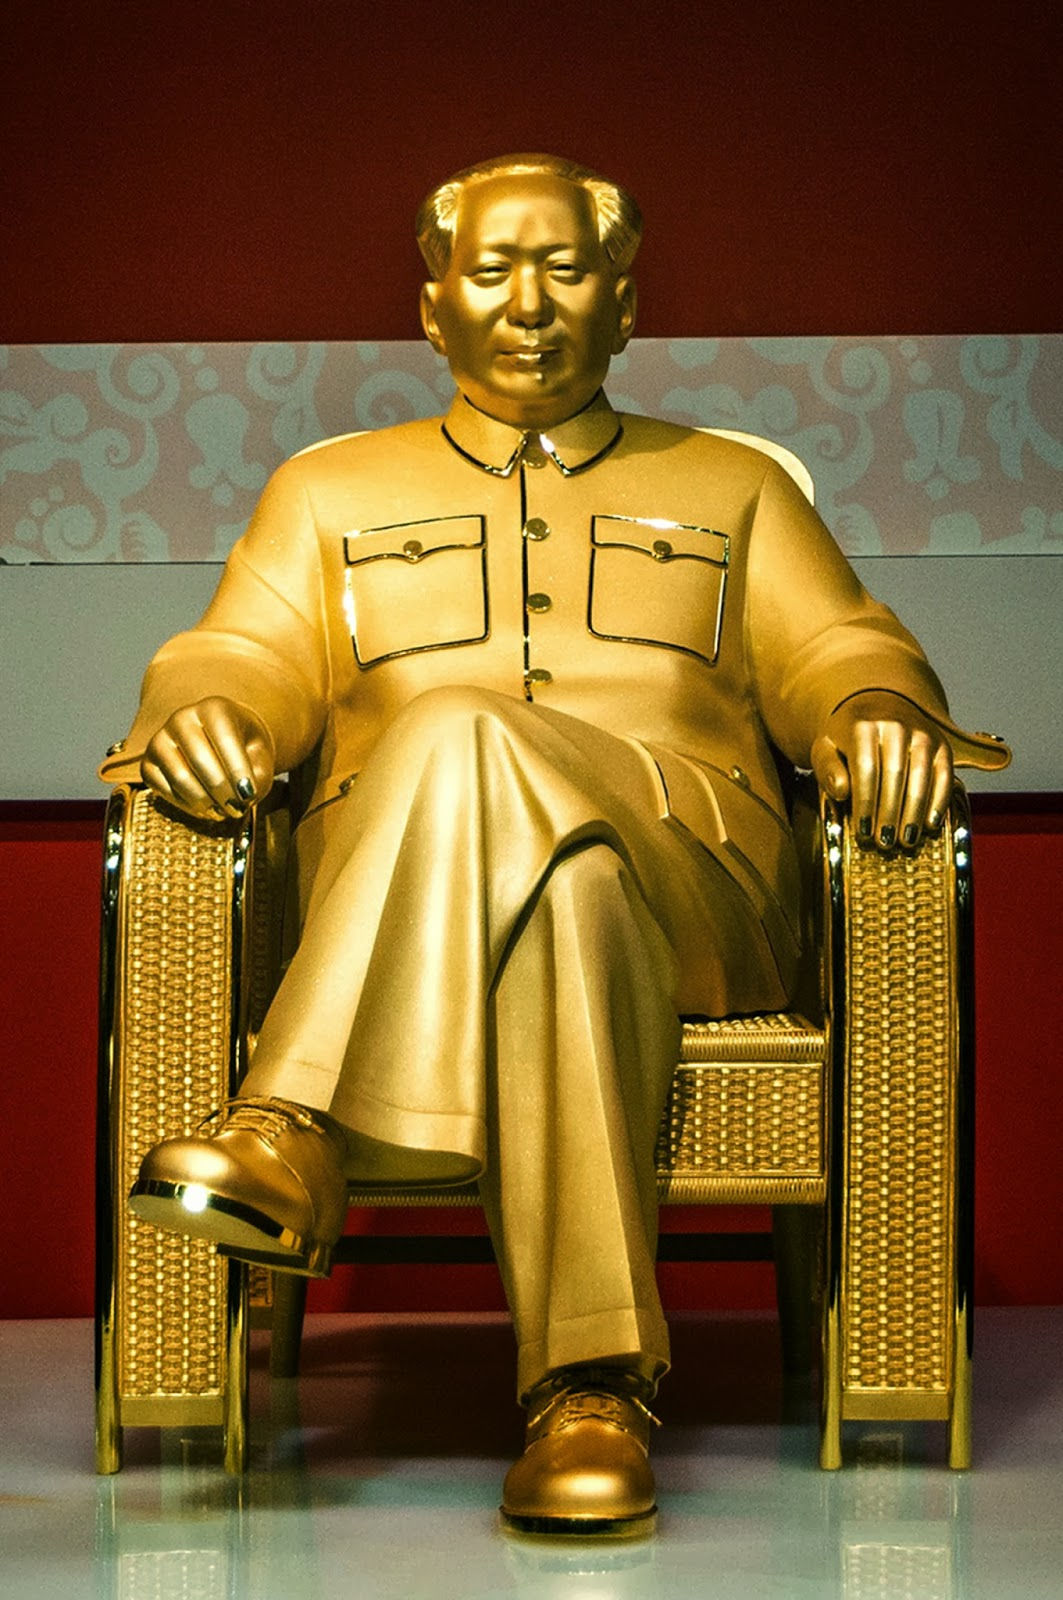 Golden, Jade, Mao Zedong, China, USD, Million, Exhibition, Anniversary, Founder, Father, Shenzhen, Sculpture, Communist, Politician, Politicians, Worth, Province, Asia, News,